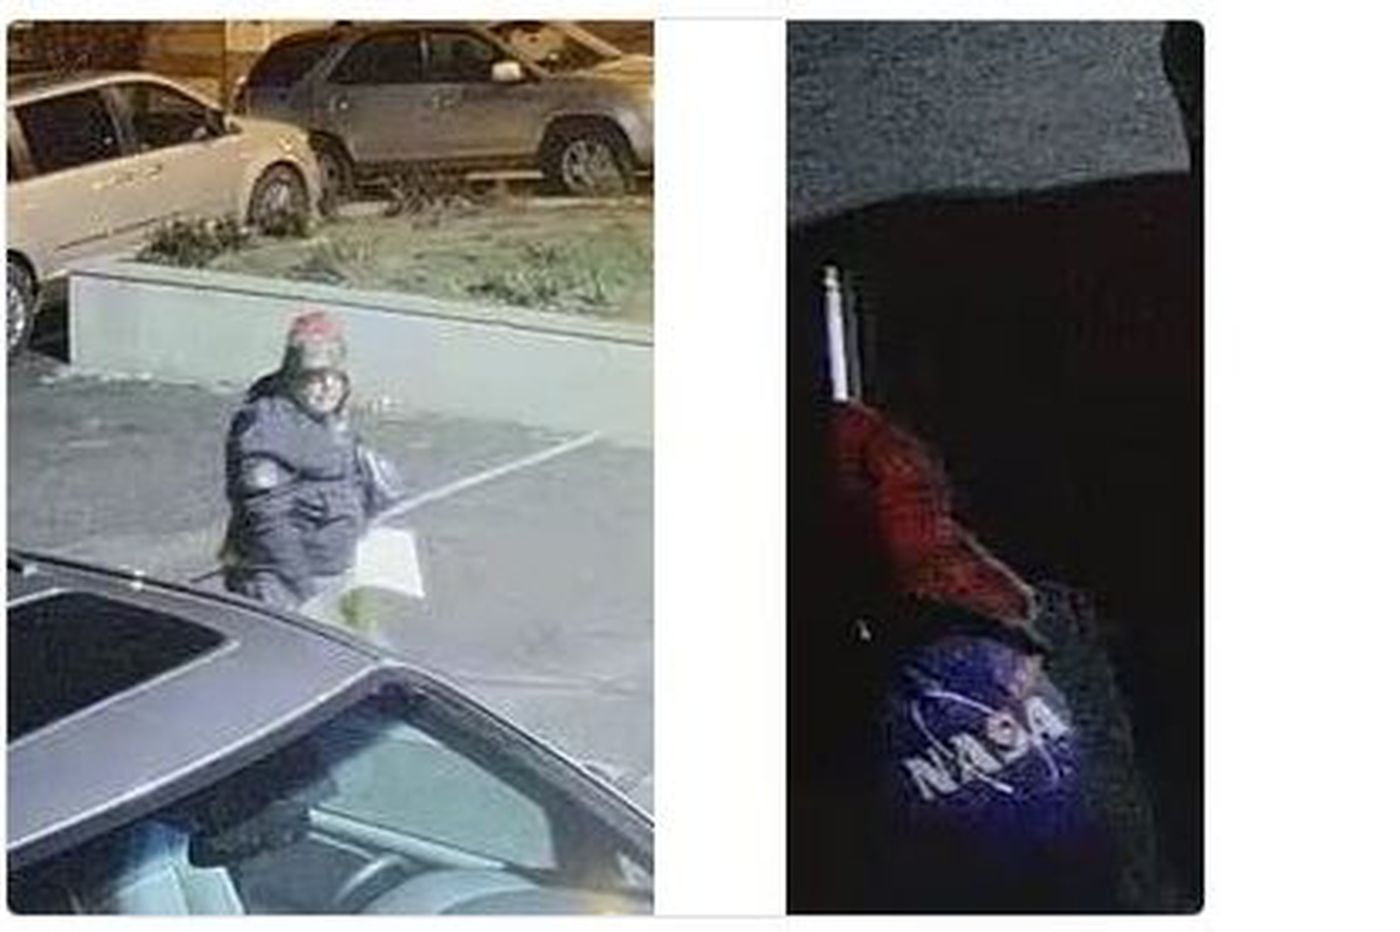 Police seeking man who left threatening signs at Upper Darby mosque